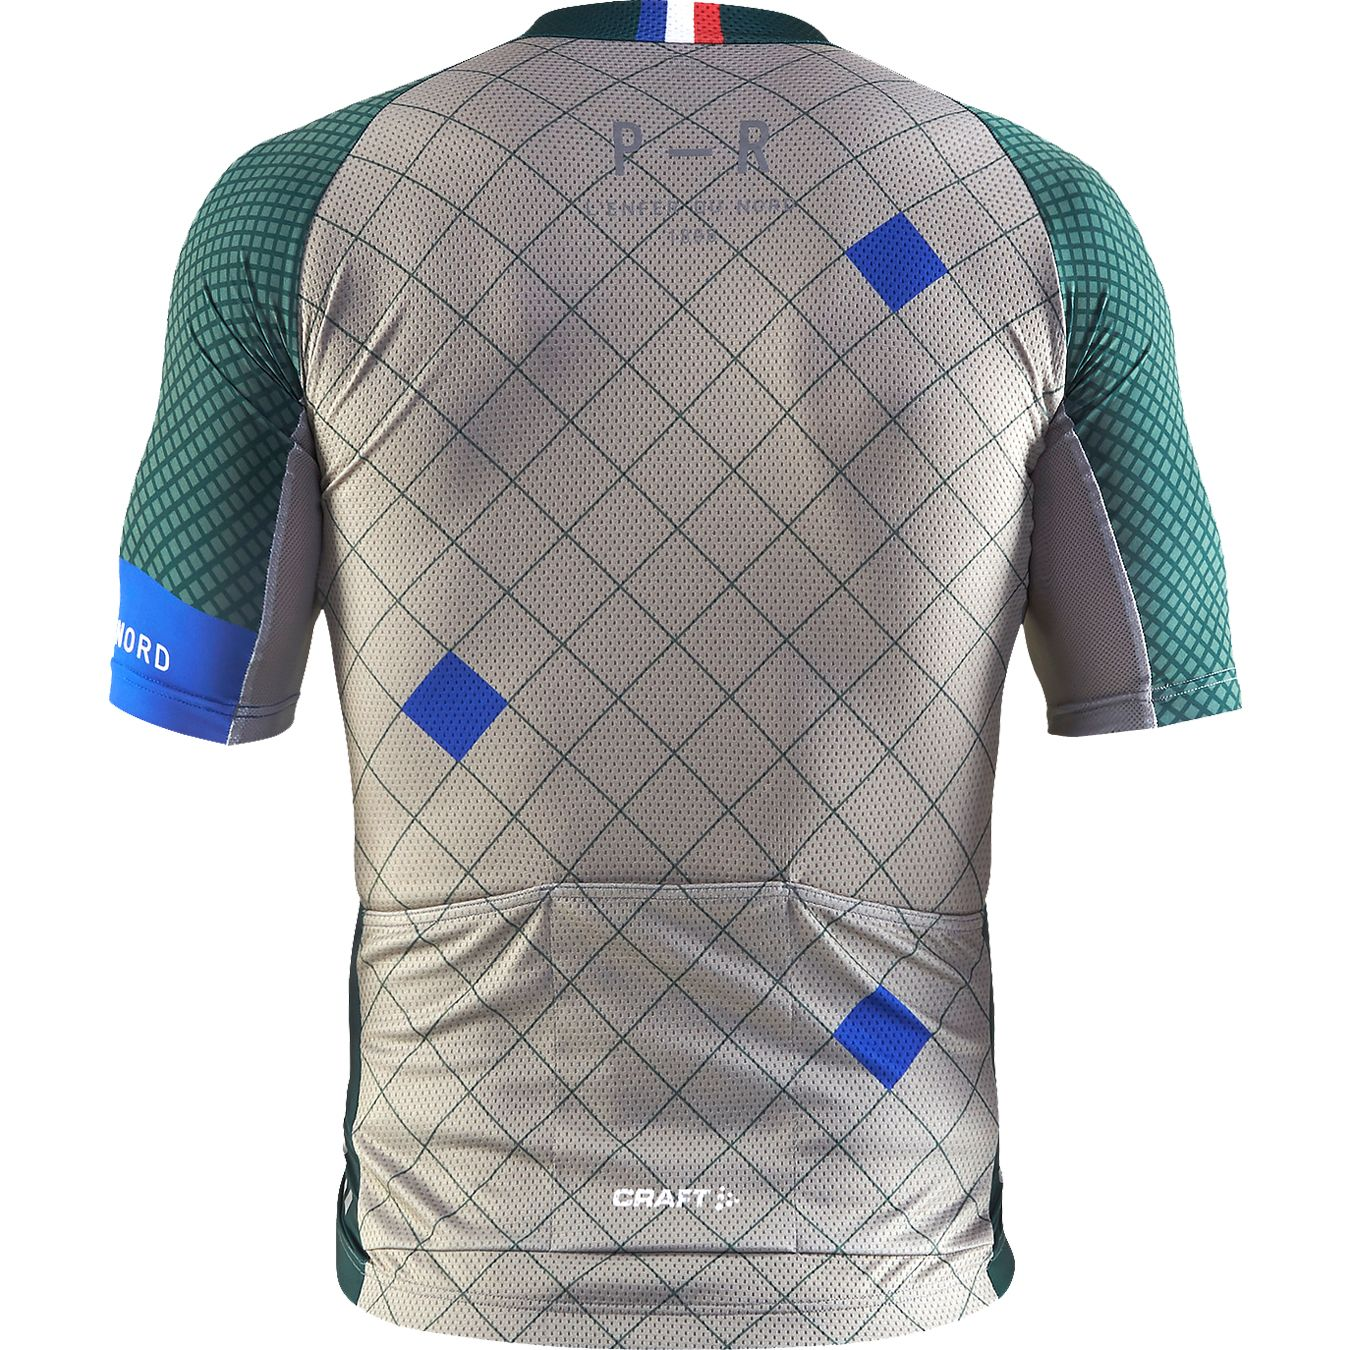 a57568a07 ... short sleeve cycling jersey gray (1906120-. Previous